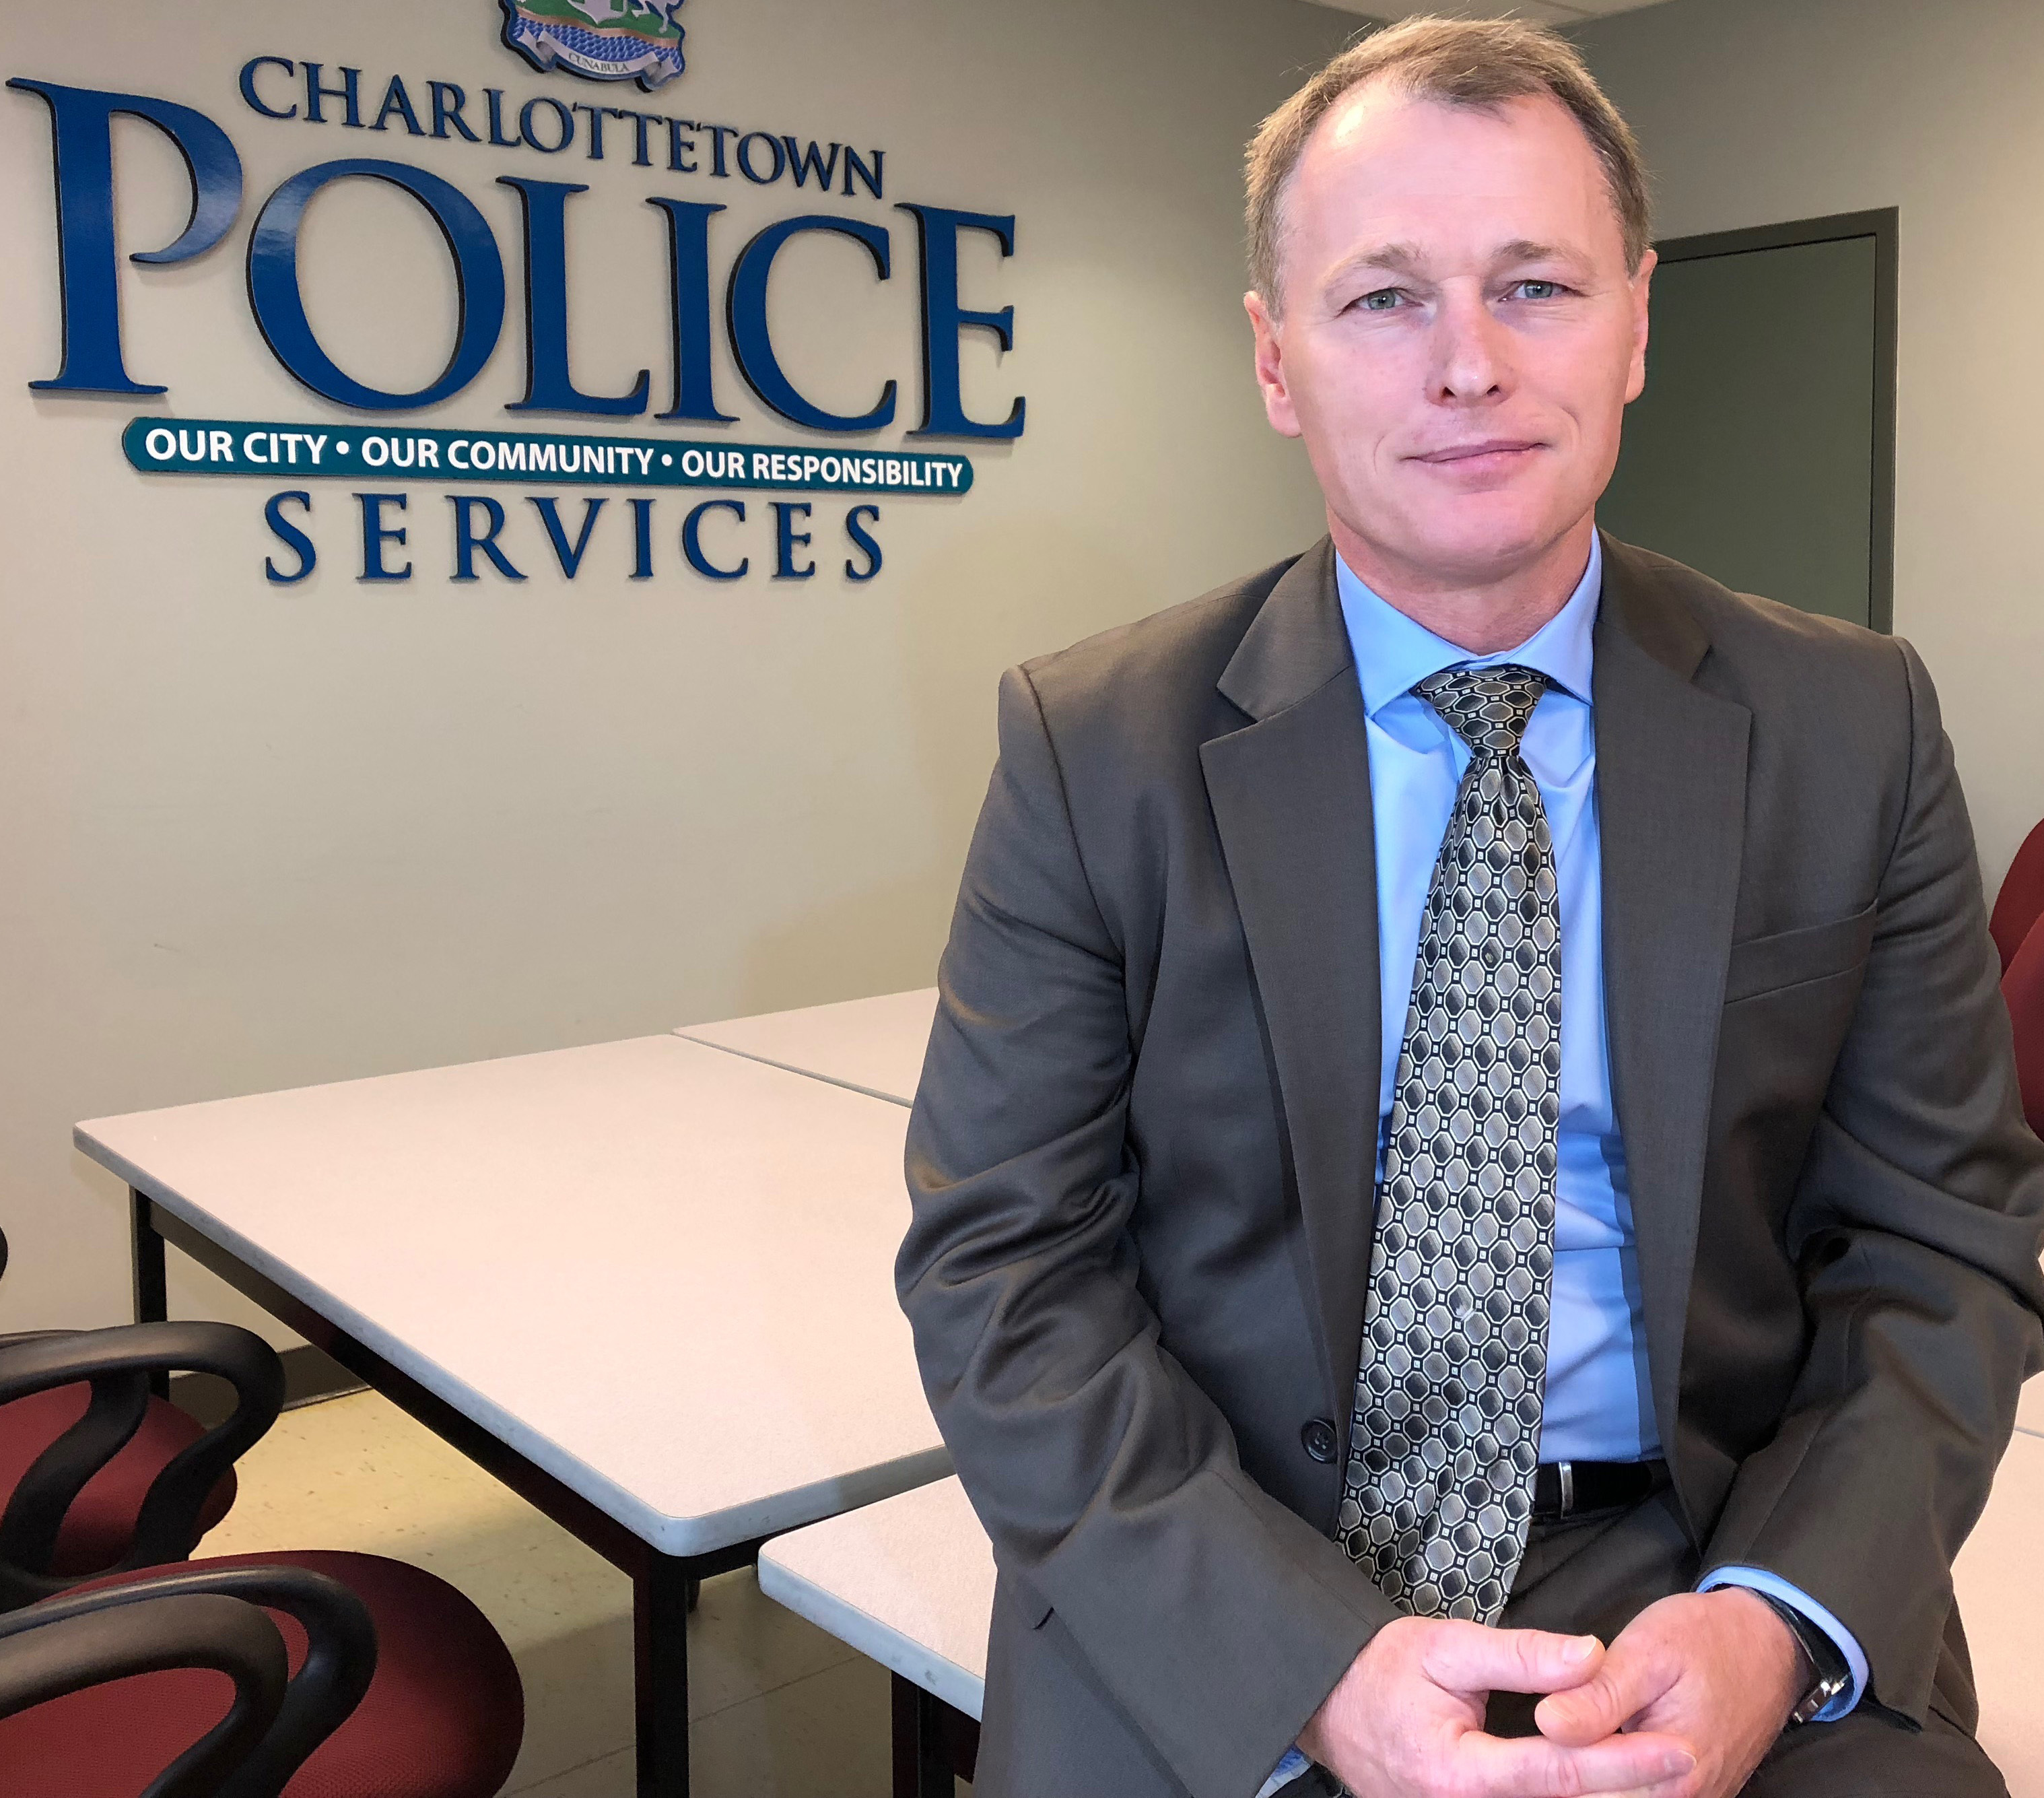 Brad MacConnell, now Charlottetown's deputy police chief, was a member of an RCMP and Charlottetown Police joint task force assigned to investigate the bombings. (Ken Linton/CBC)